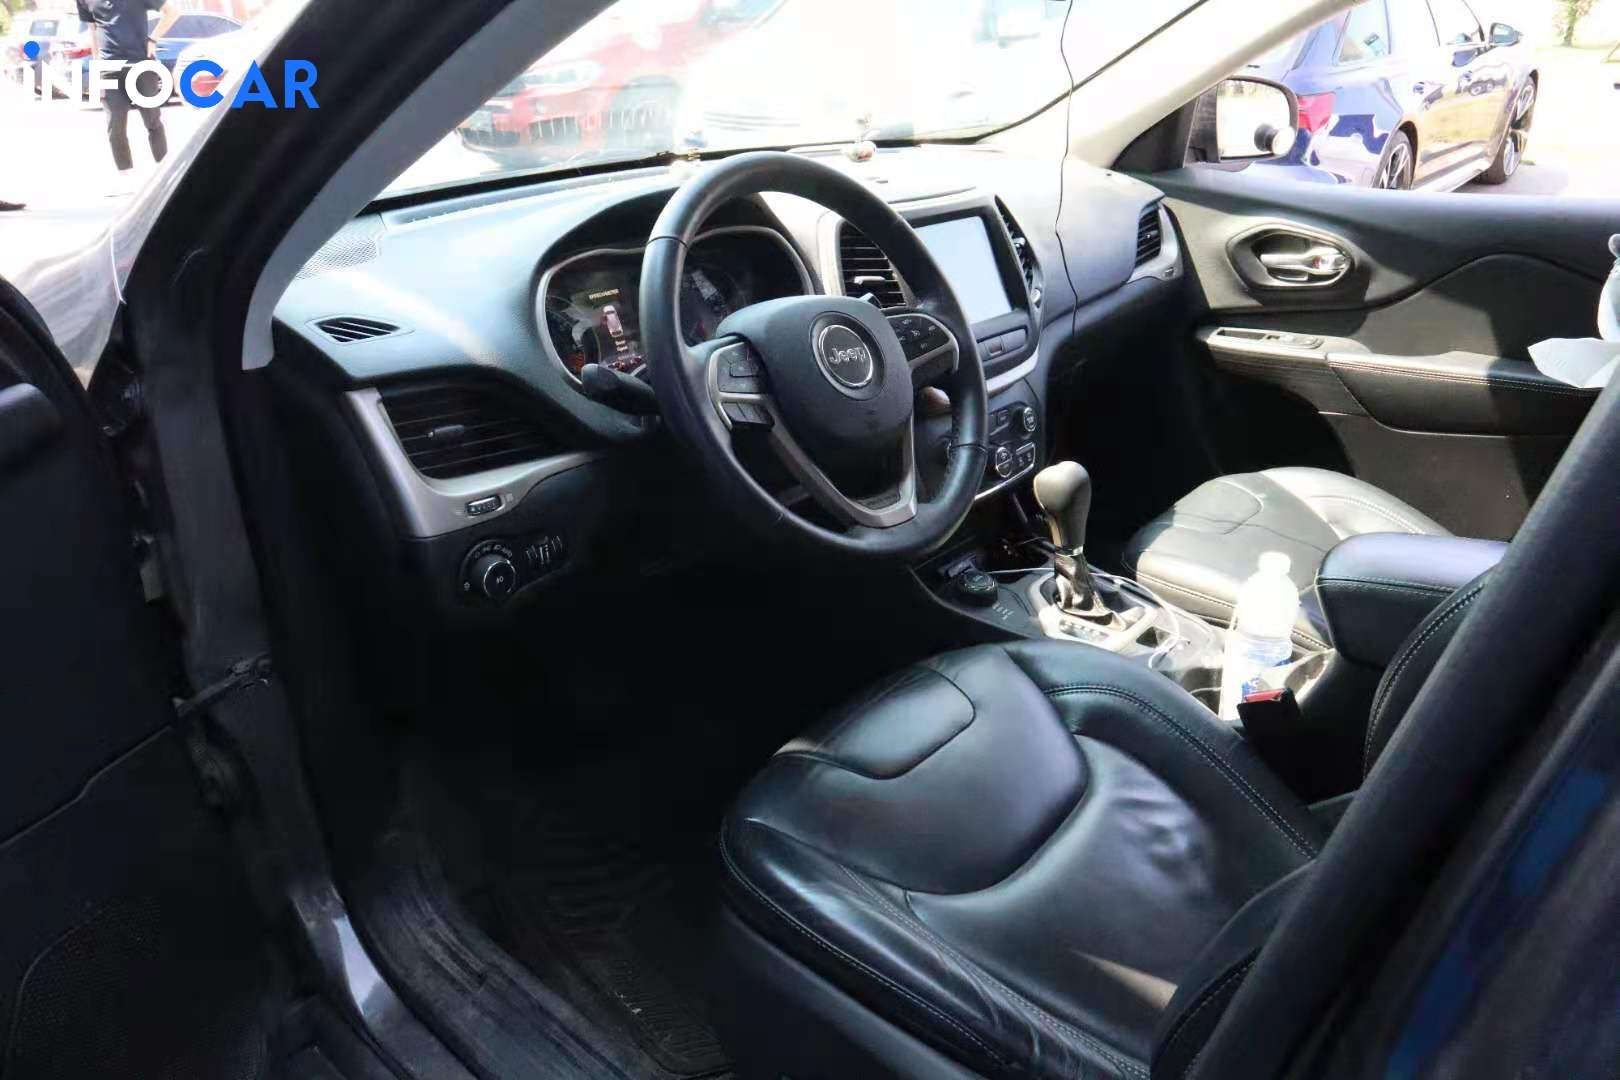 2015 Jeep Cherokee limited - INFOCAR - Toronto's Most Comprehensive New and Used Auto Trading Platform